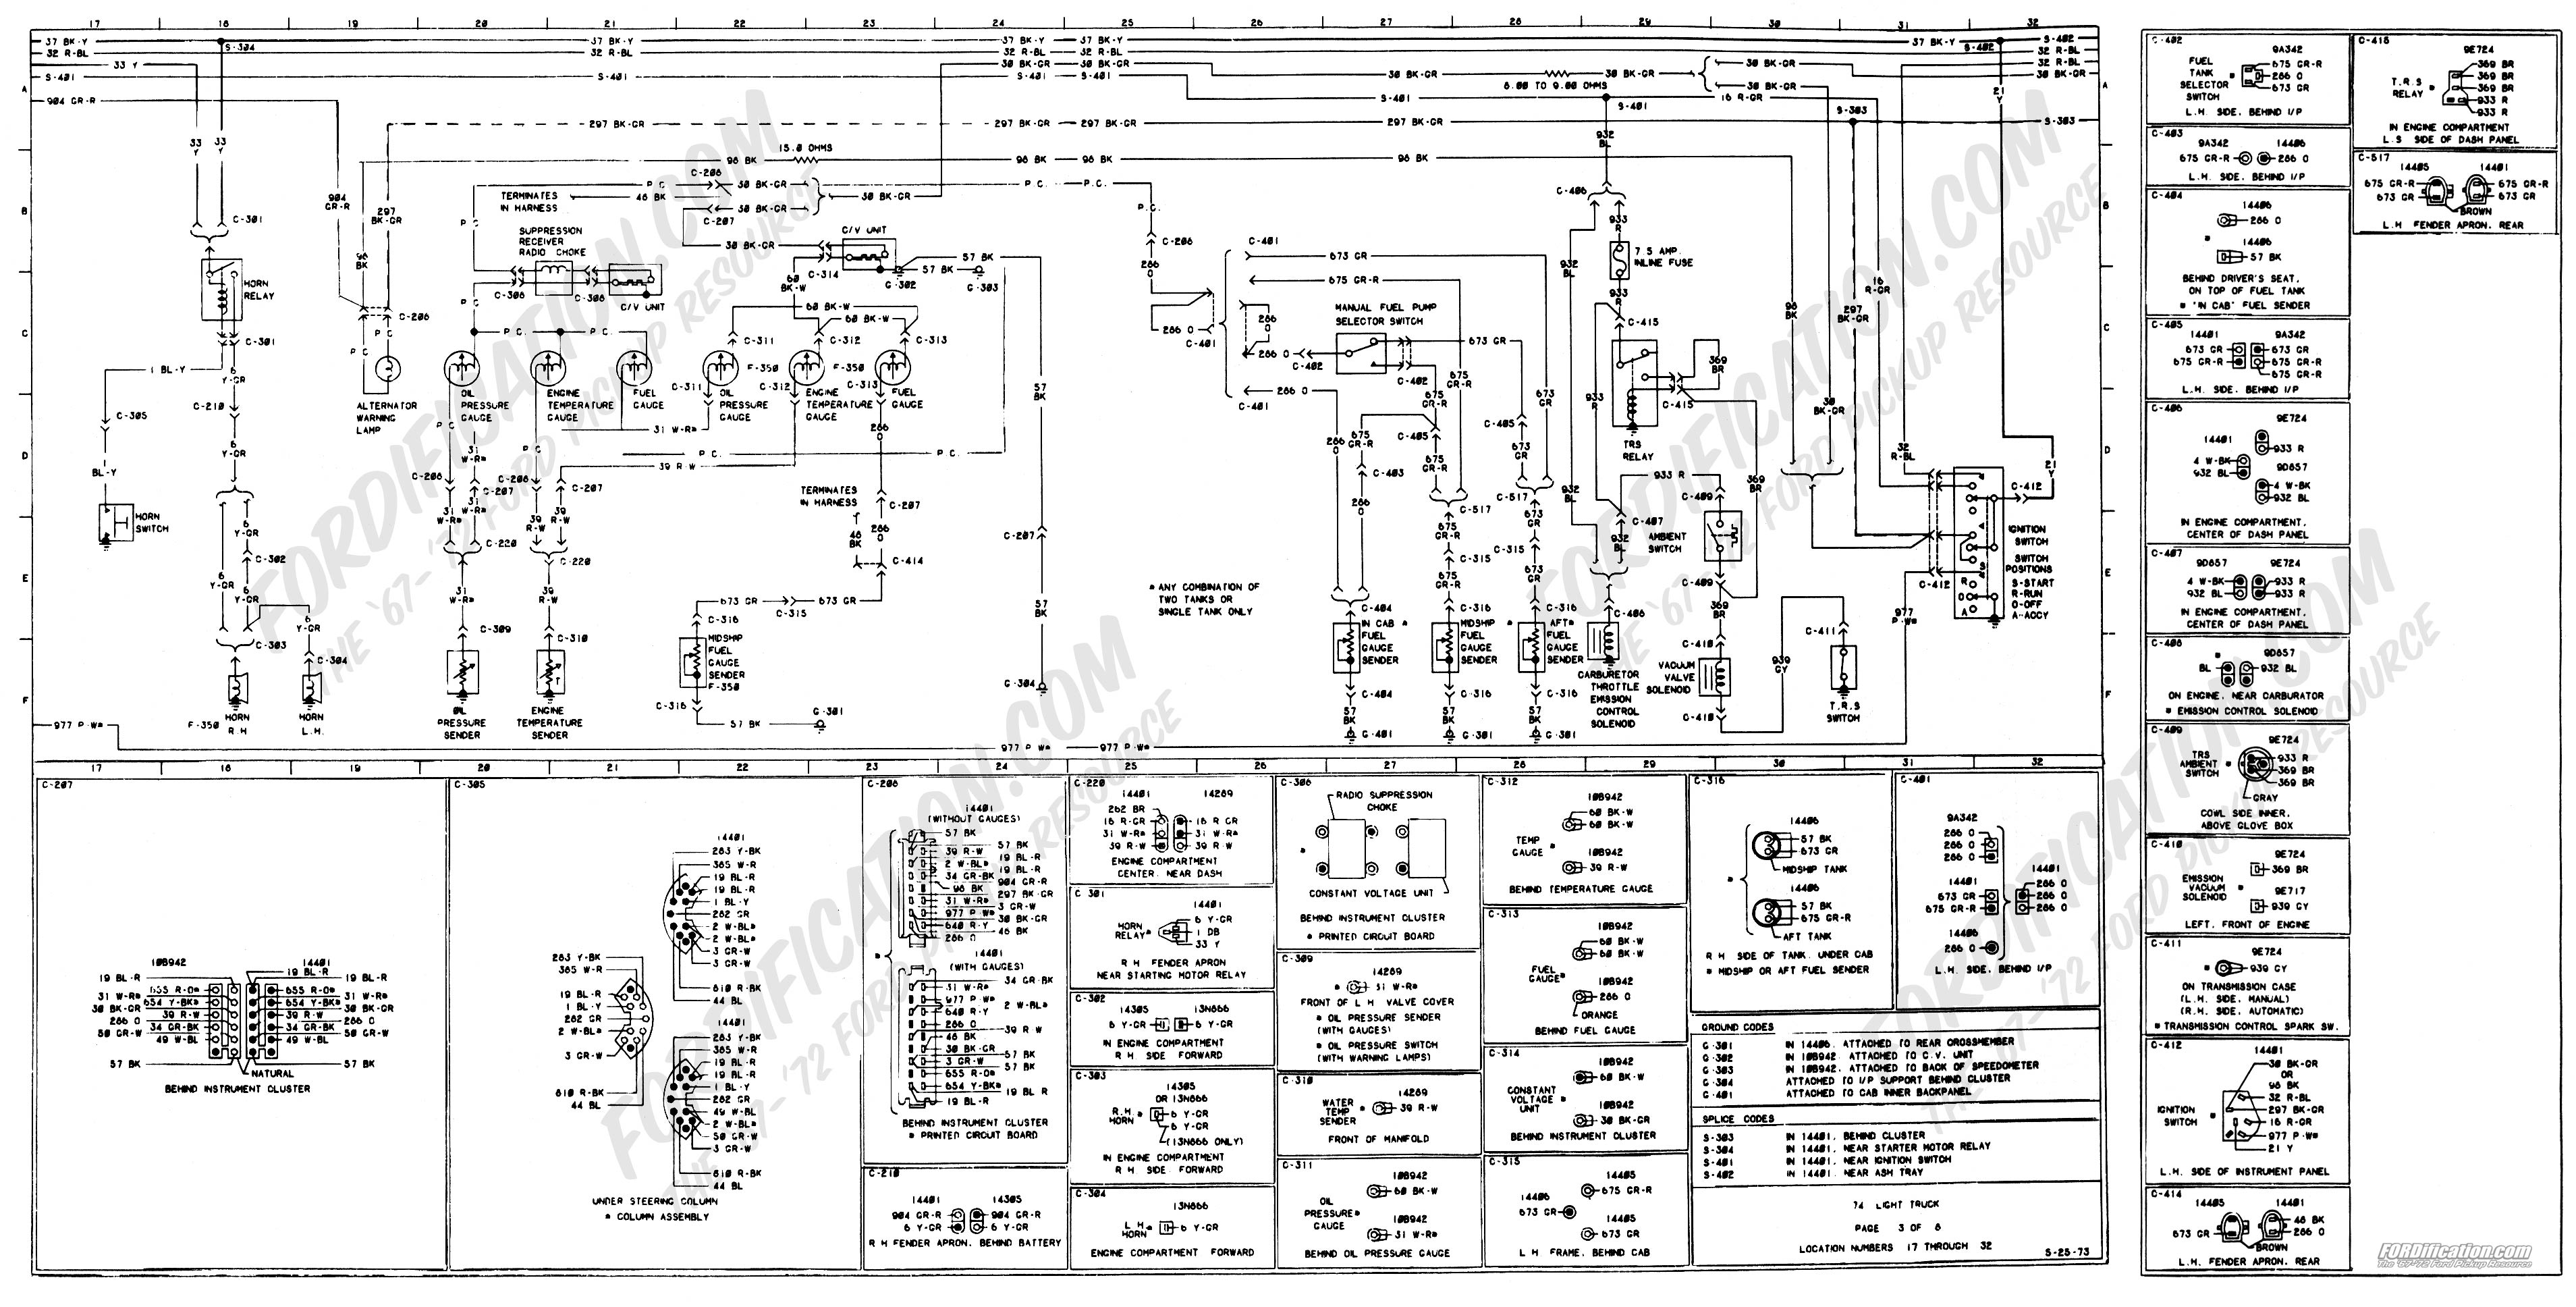 wiring_74master_3of8 1973 1979 ford truck wiring diagrams & schematics fordification net ford transit electrical diagram wiring schematic at soozxer.org